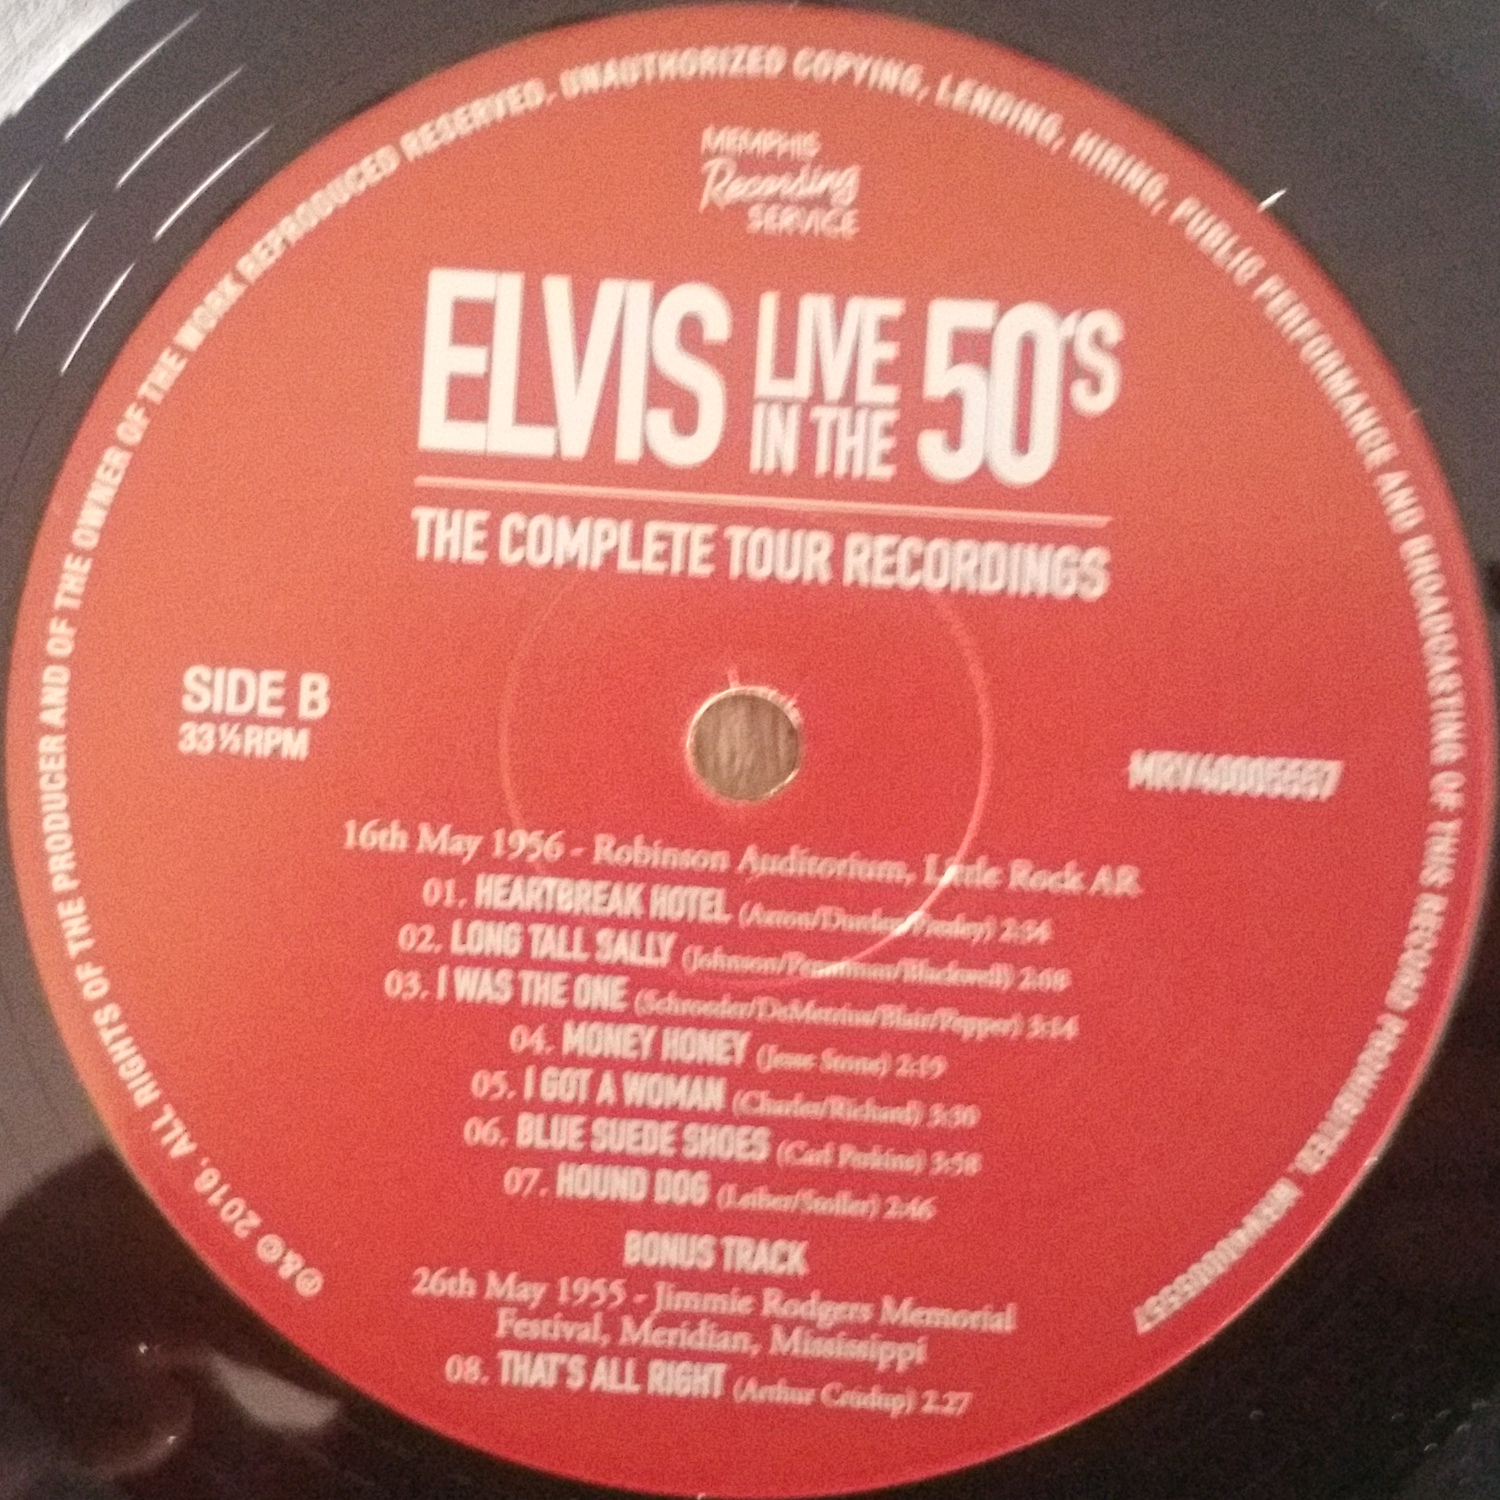 LIVE IN THE 50's (The Complete Tour Recordings) Liveinthe50s-thecomplpak1s